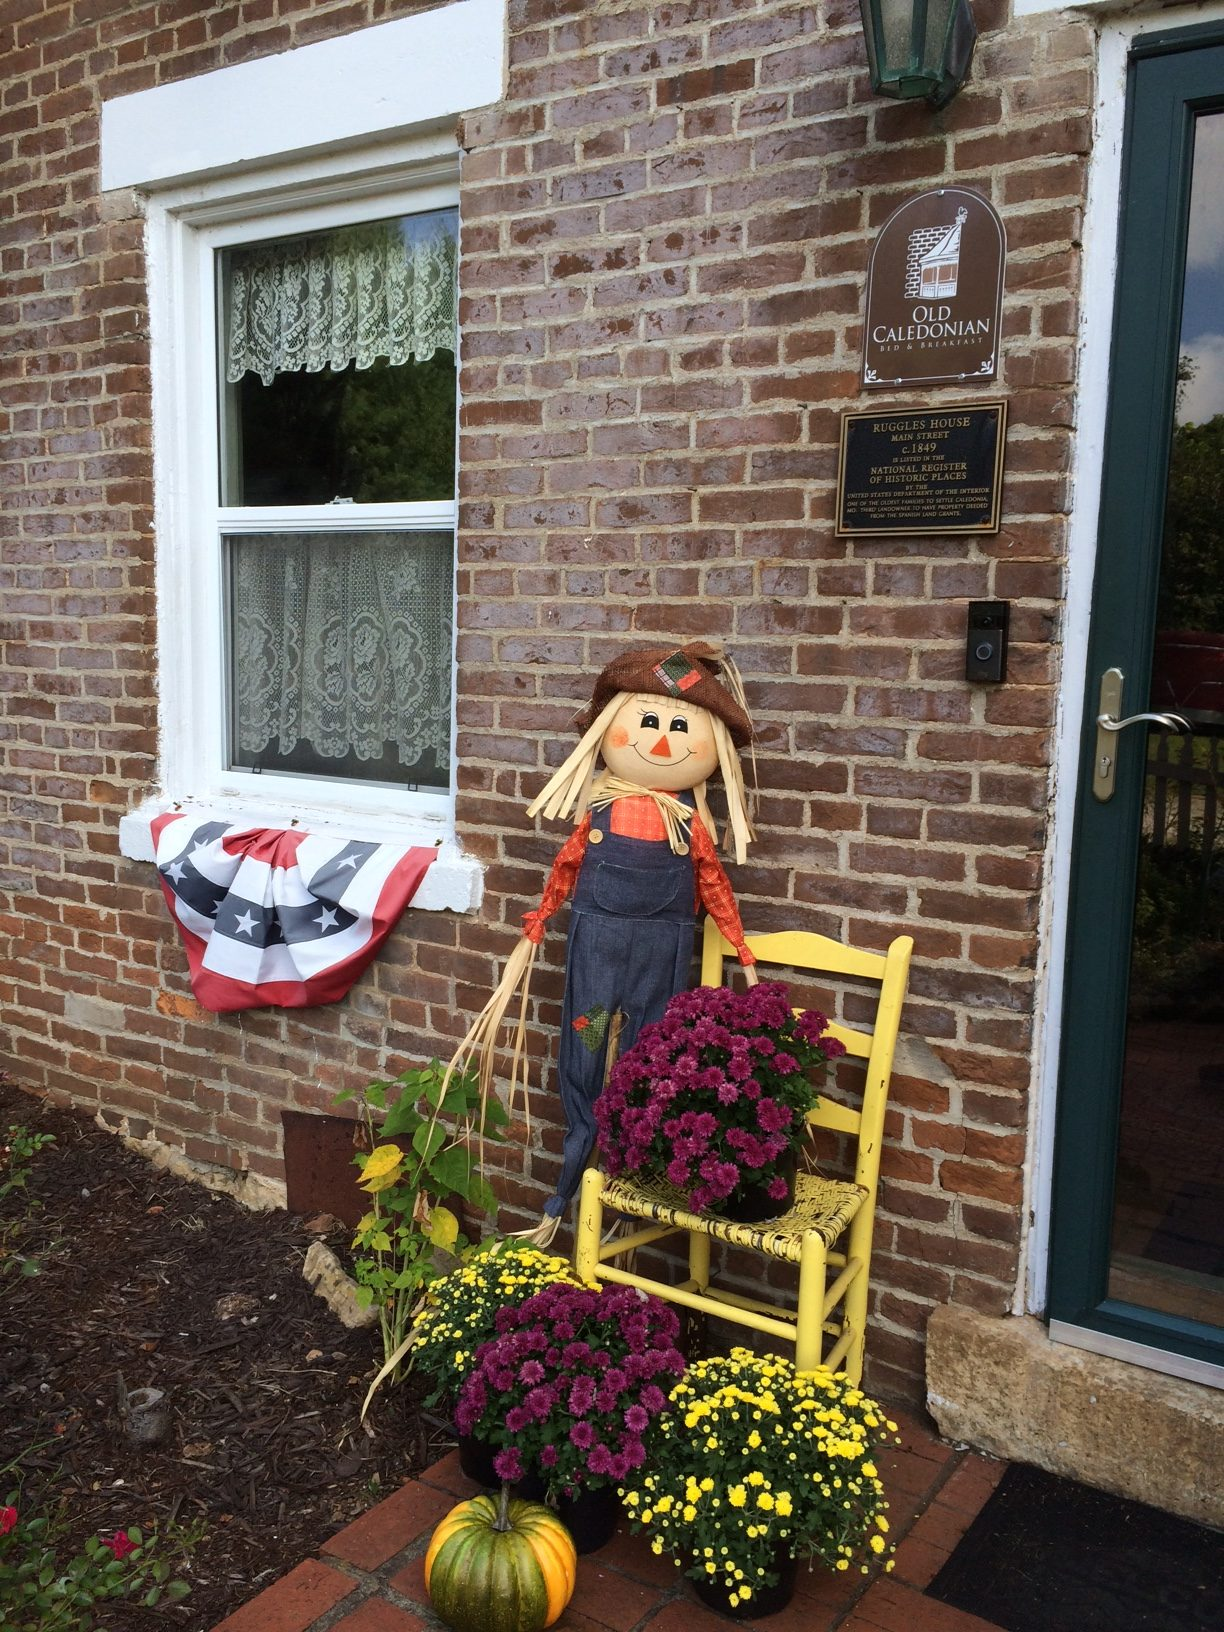 A cute scarecrow outside the entrance of the Old Caledonian